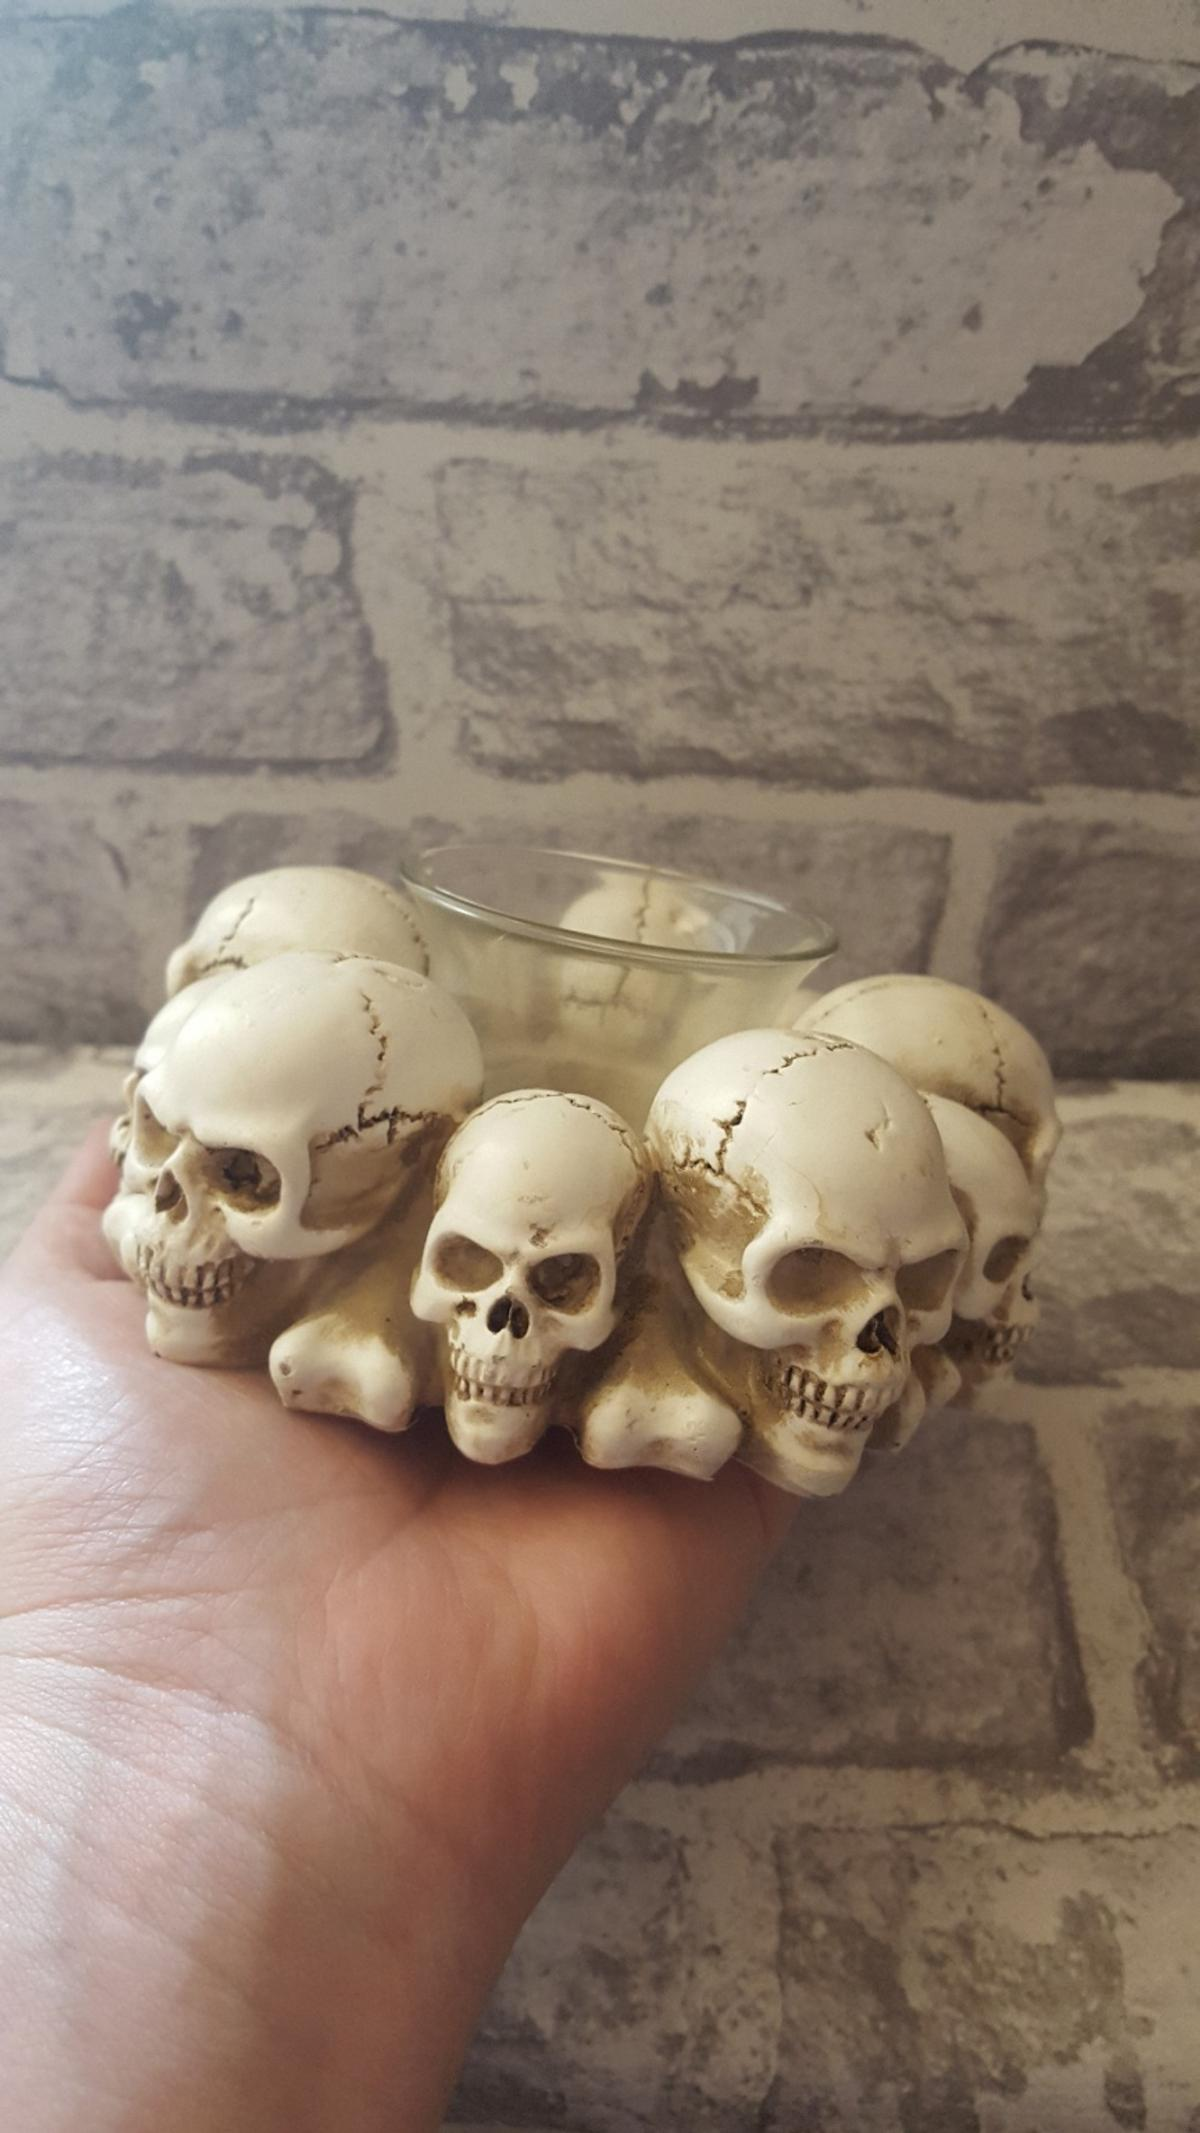 💀🔥Skull Tealight Candle Holder 🔥💀  Made from high quality sculpting resin with a glass tealight holder in the centre.  Height: 5.5cm Width: 13cm Depth: 13cm Weight: 0.36kg  £8.50 Collection Marston Green B37 £4 UK p&p etc  More than 1 Currently Available  BRAND NEW IN BOX WILL NOT KEEP ON HOLD NO OFFERS - I won't respond